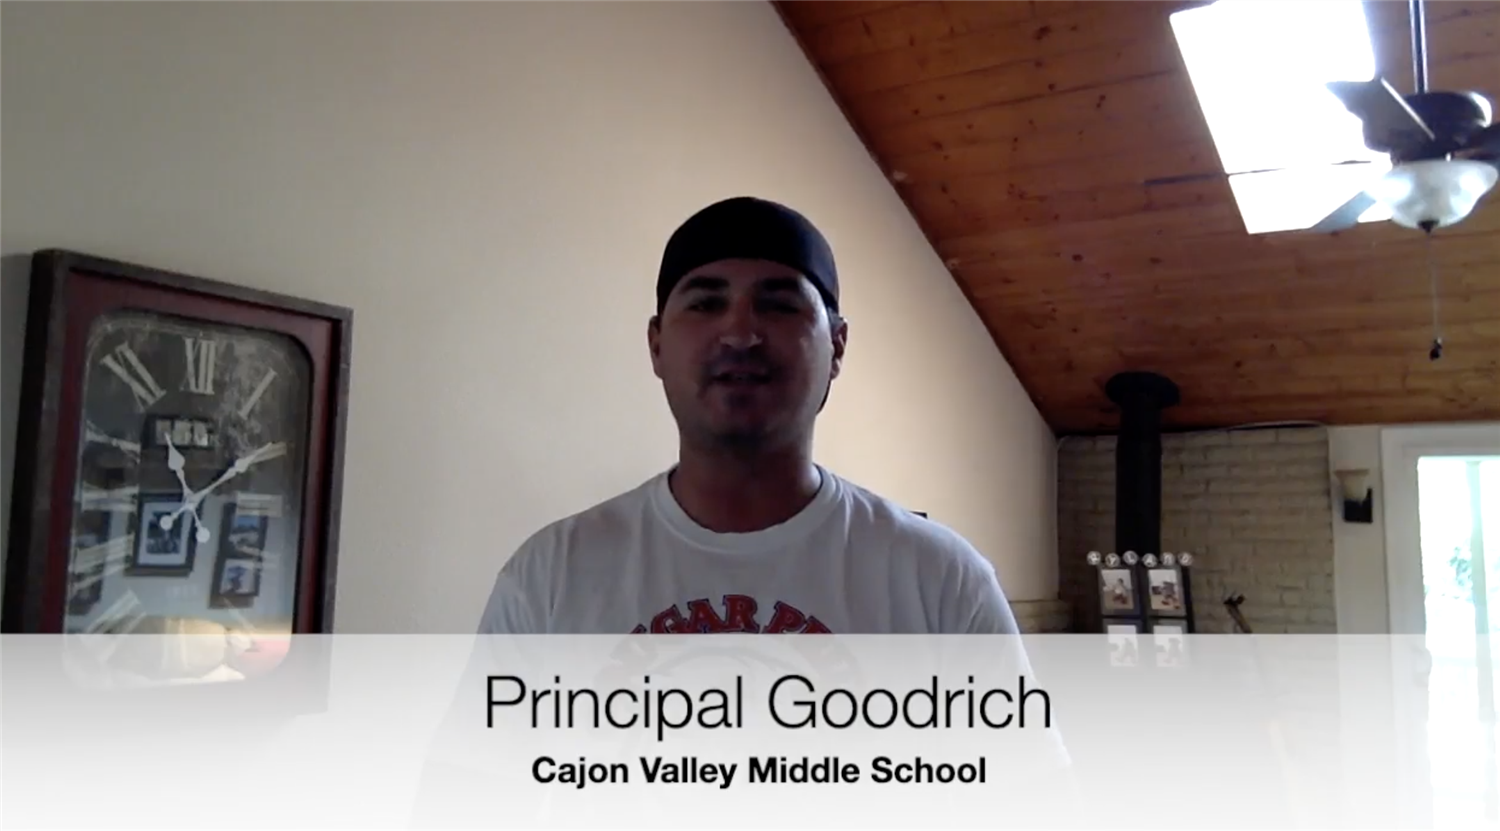 Message from Principal Goodrich - June 12, 2020